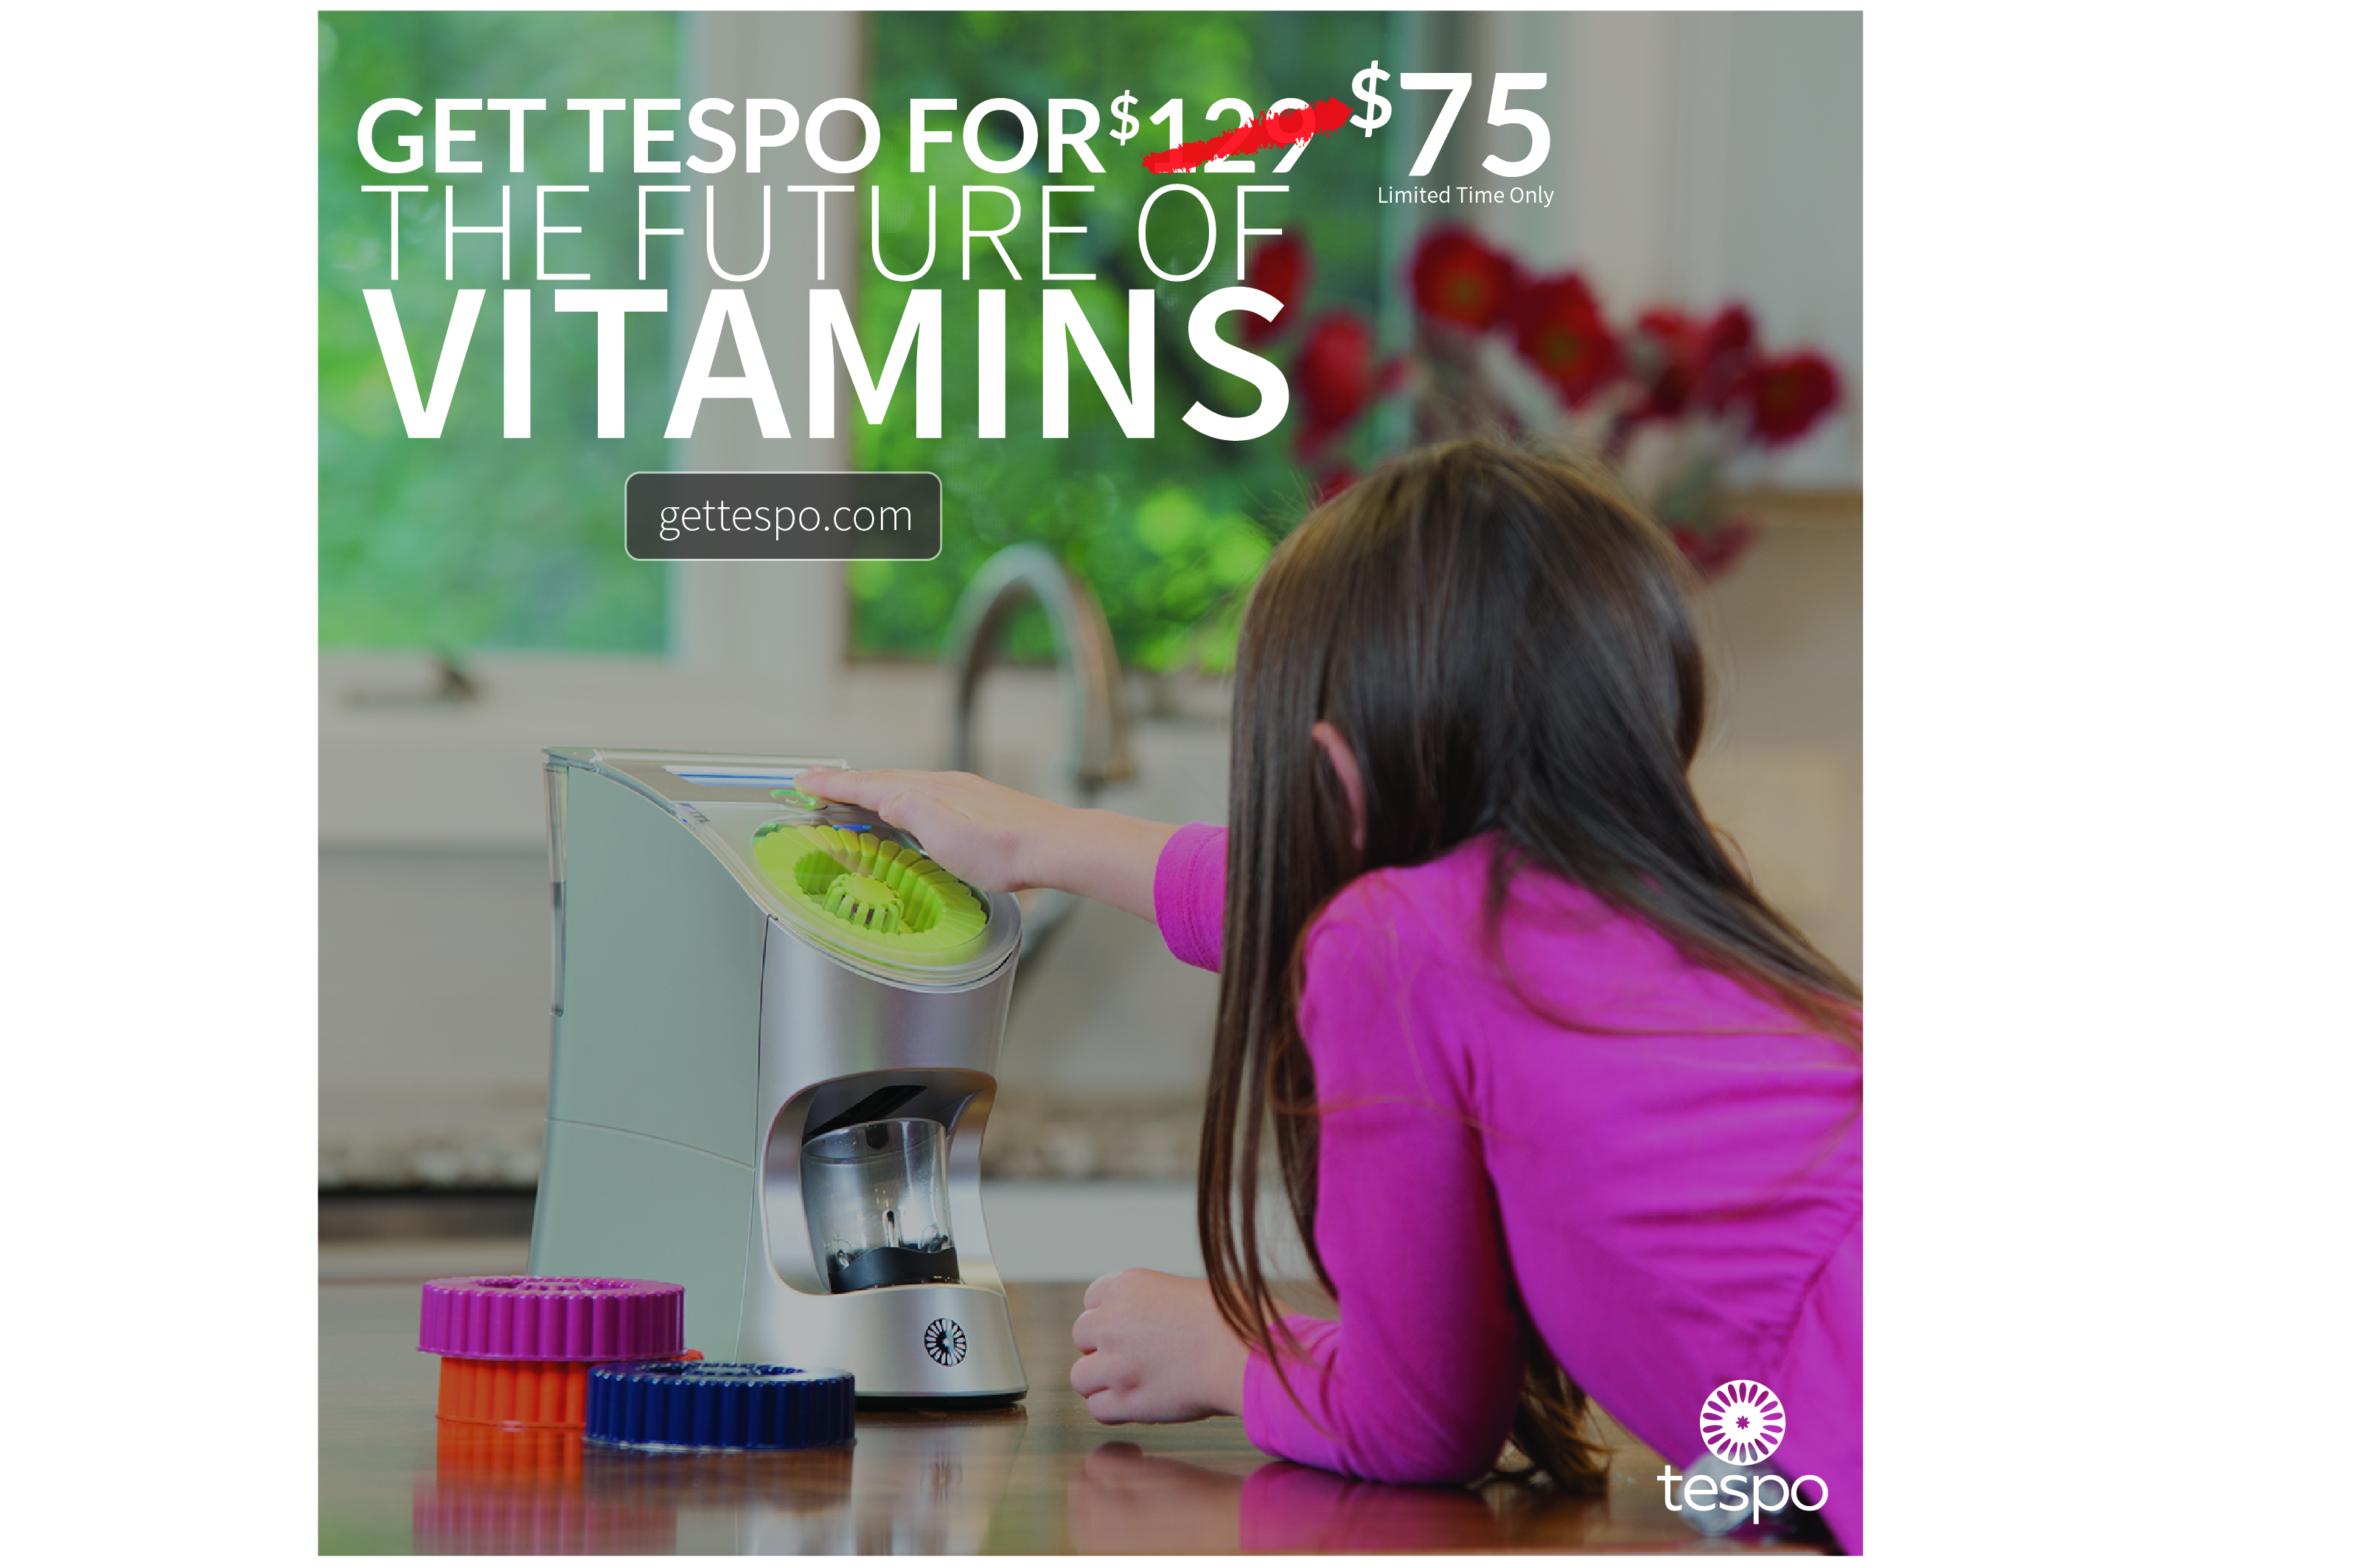 Tespo coupon code